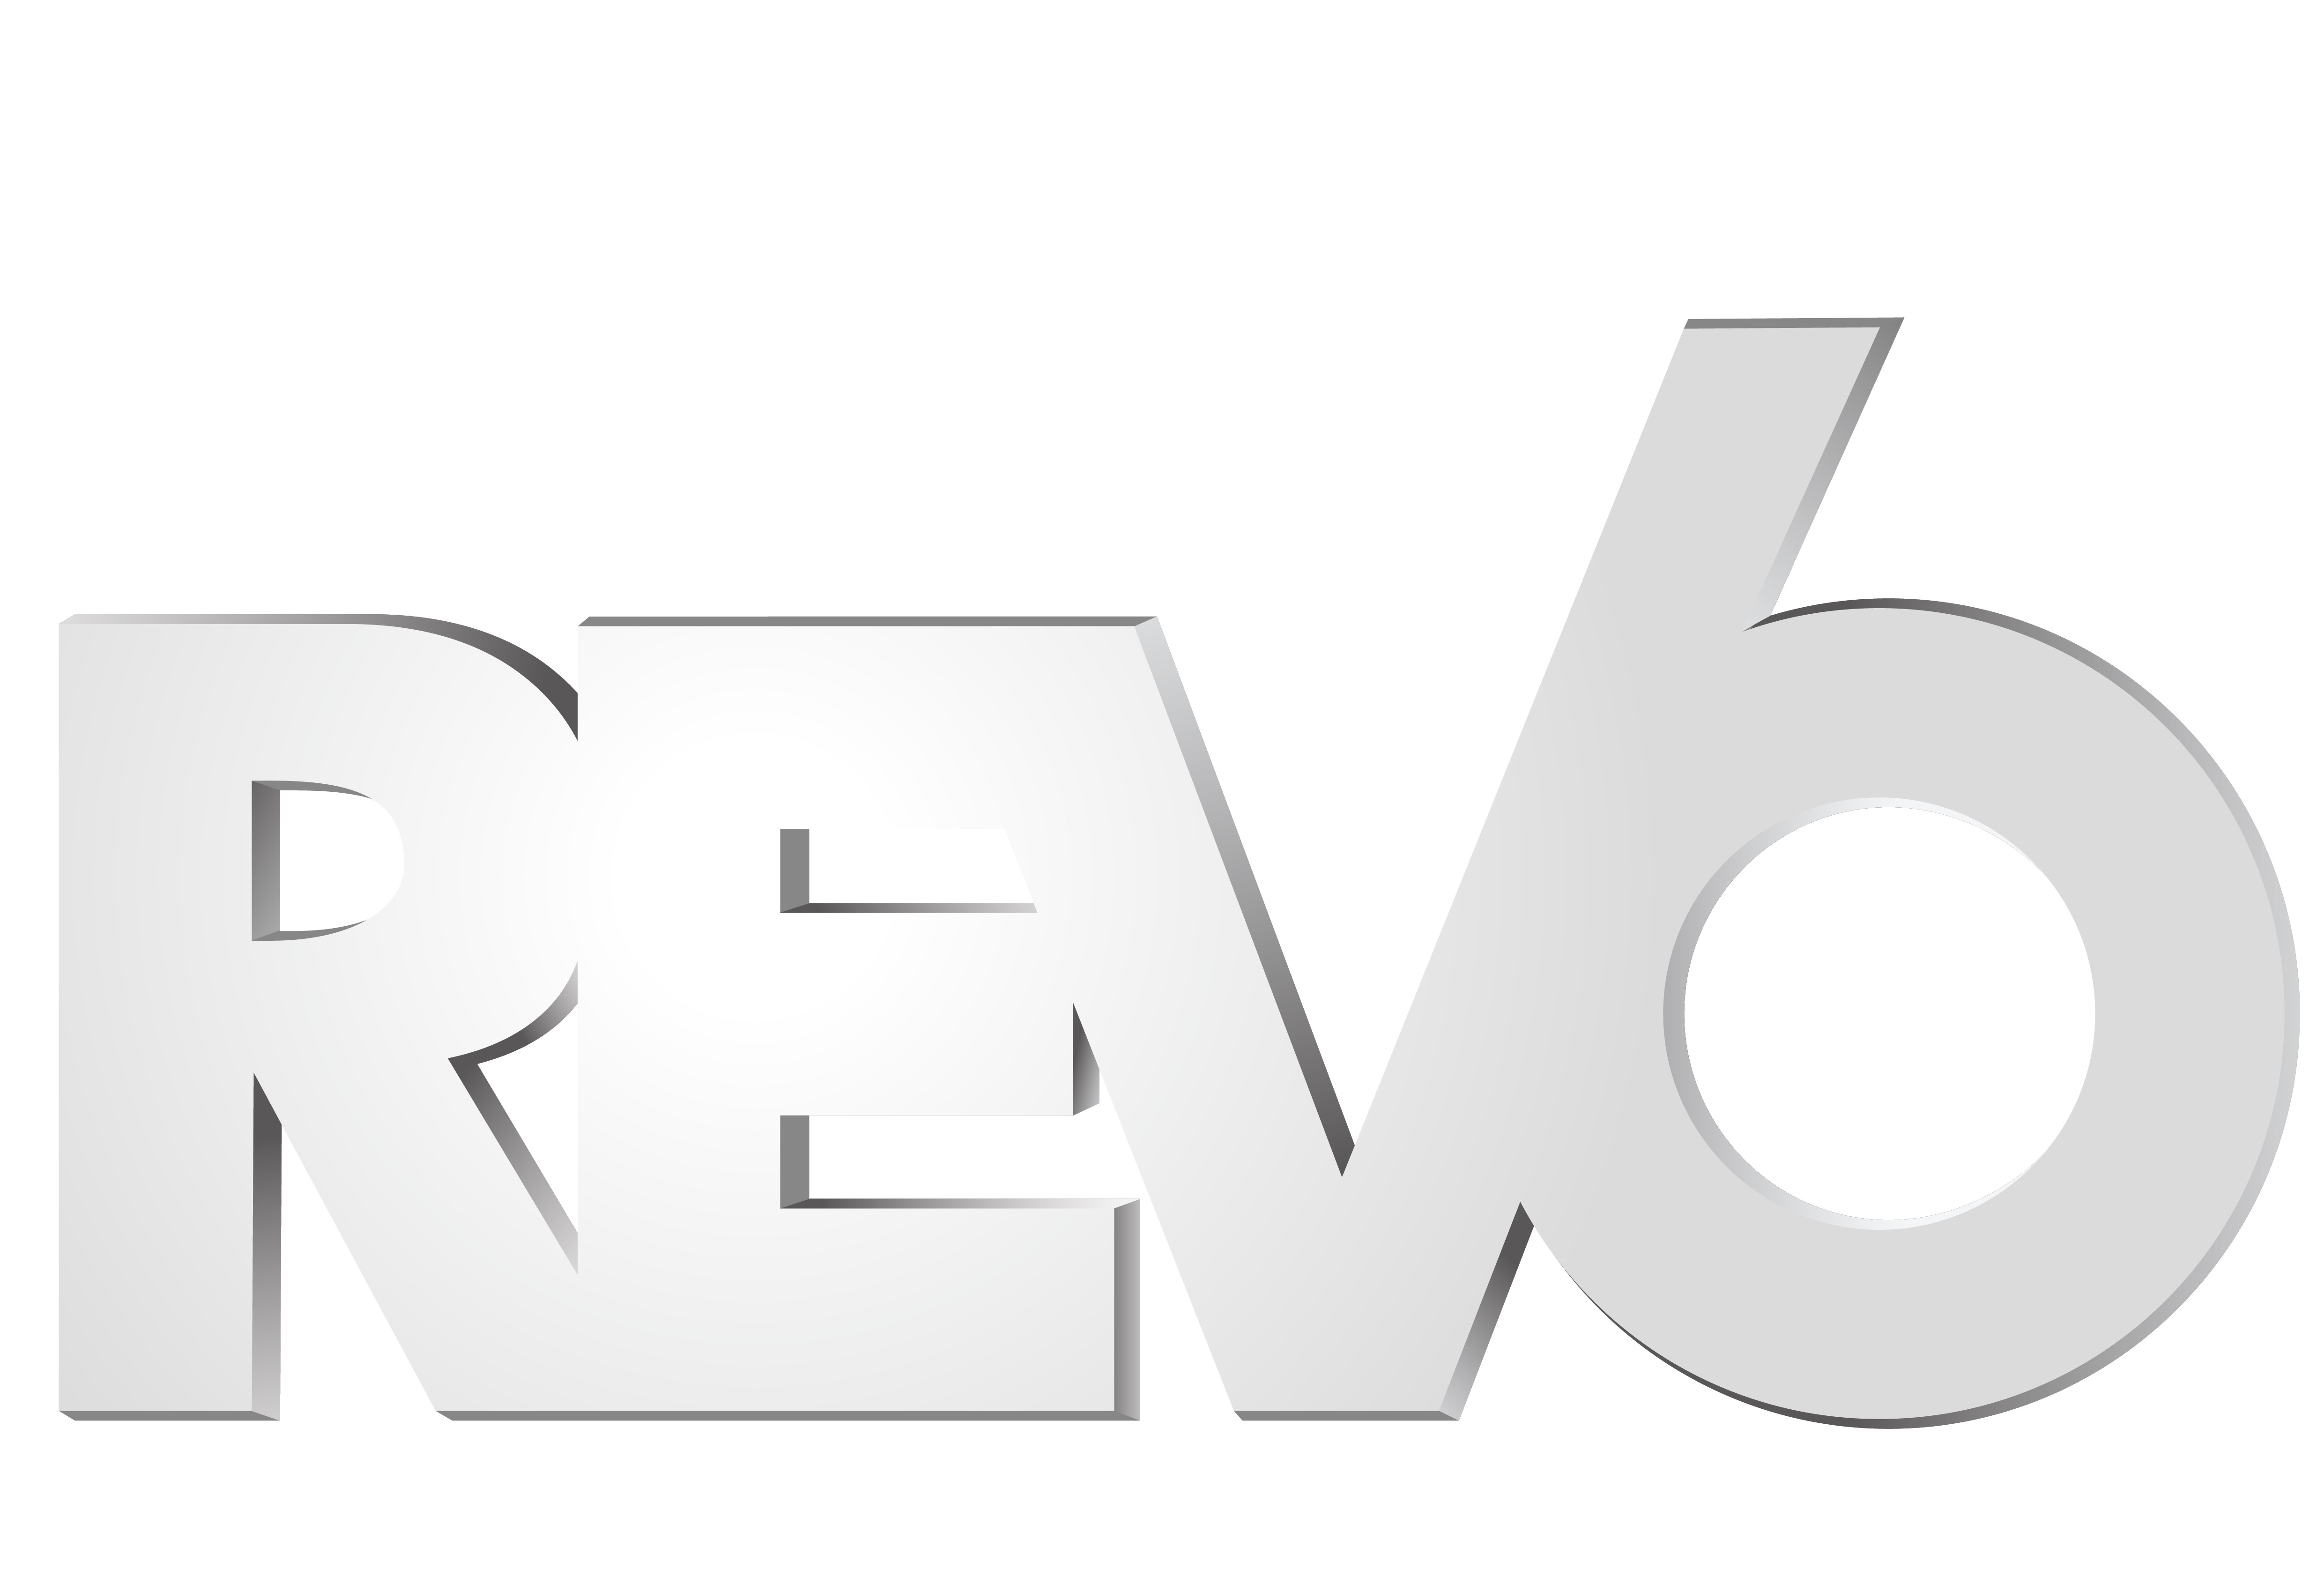 Revo Branding Communications Group